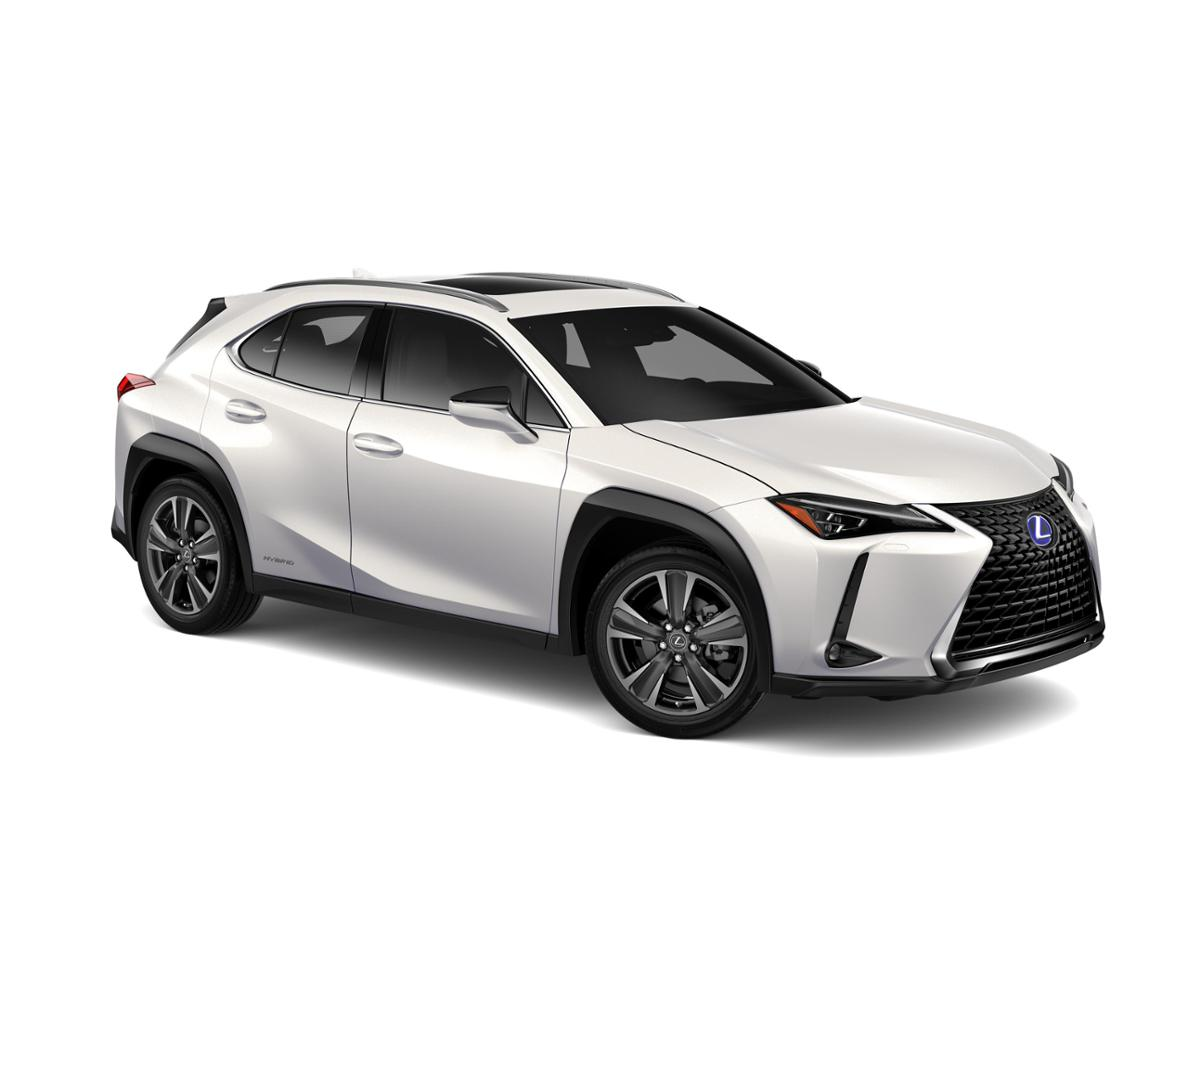 2019 Lexus UX 250h For Sale